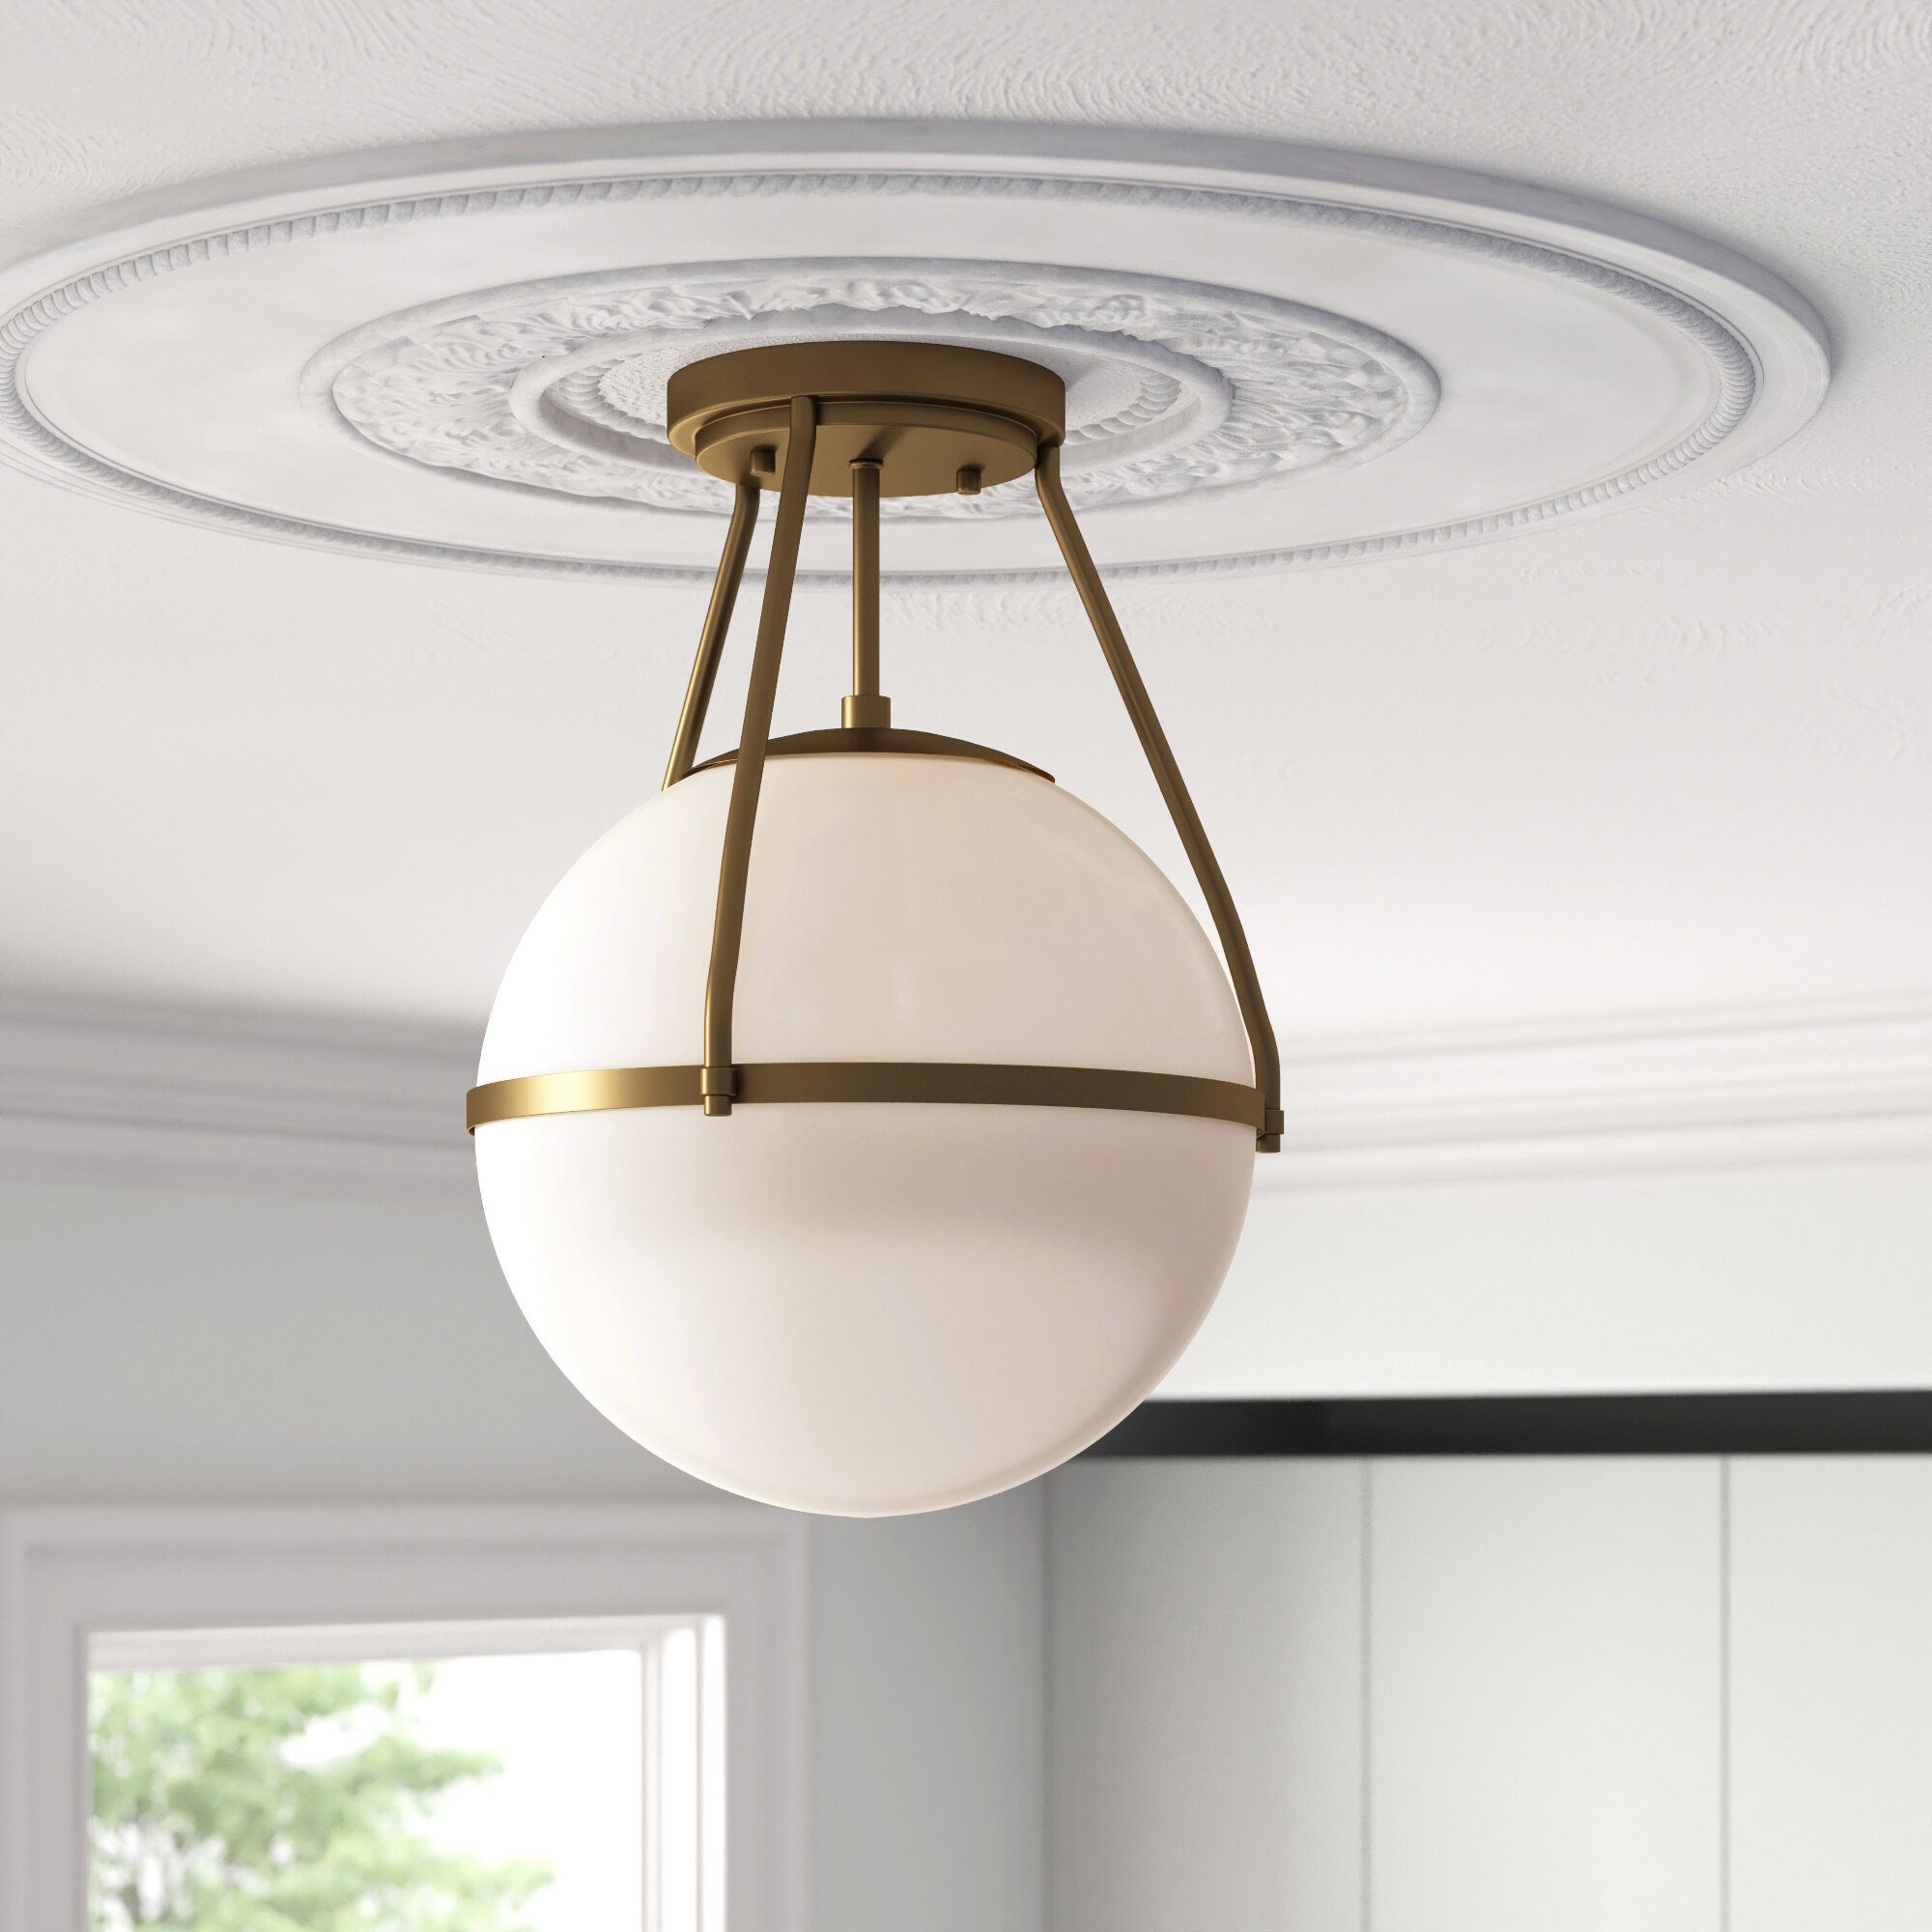 Light 13 Simple Globe Semi Flush Mount